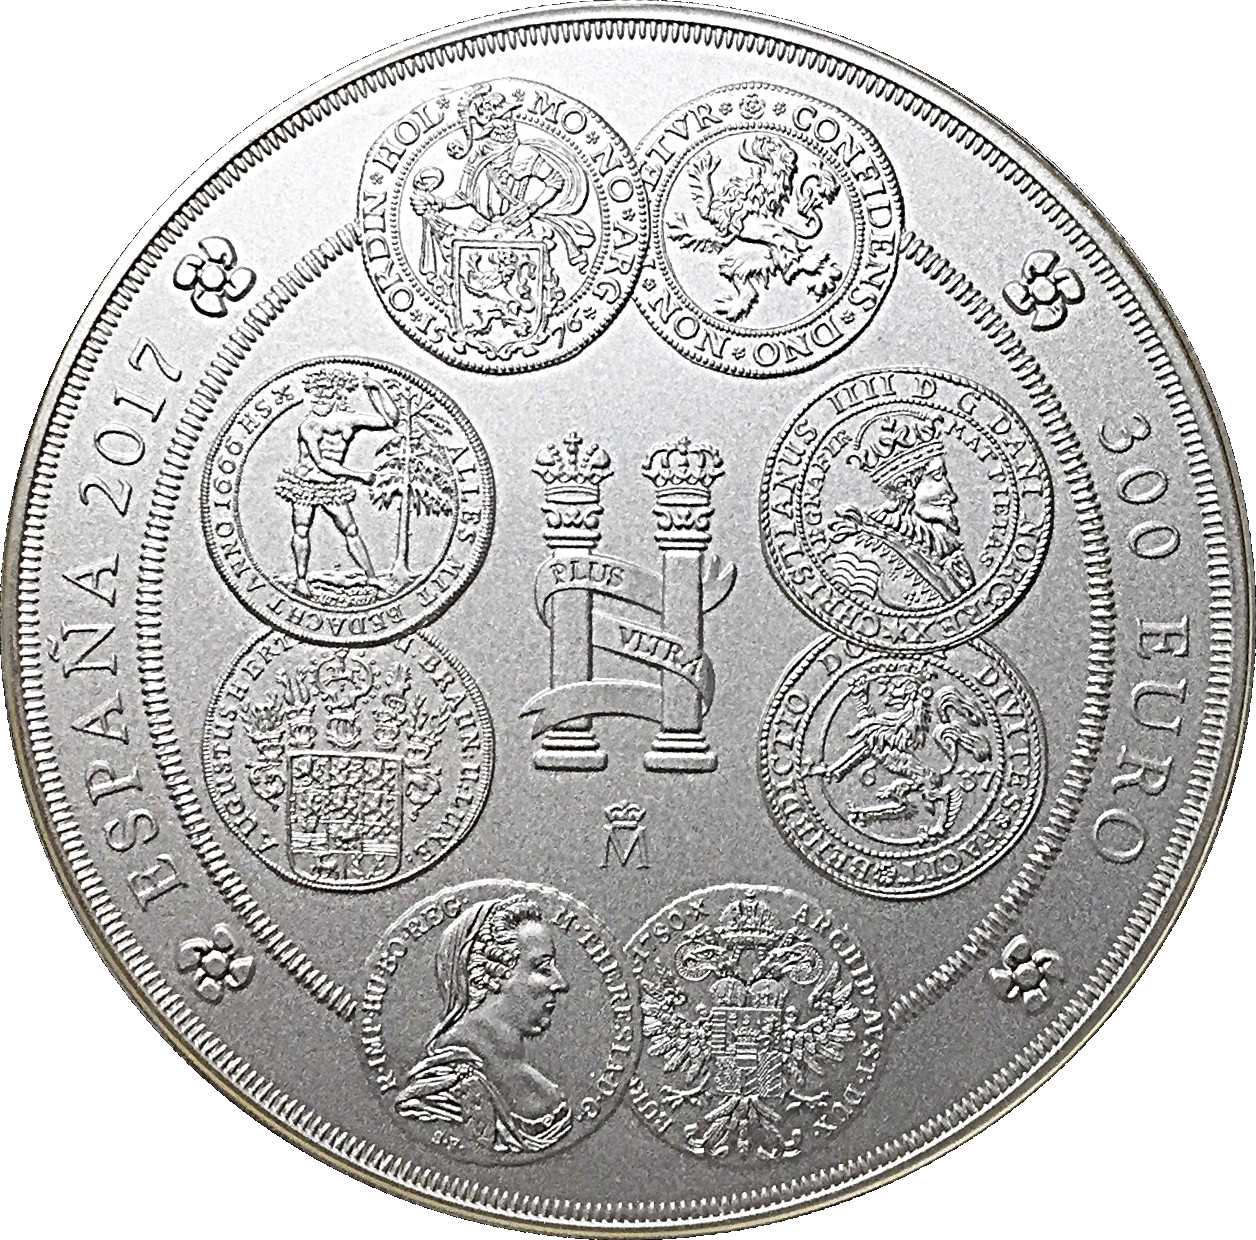 300 Euro Felipe Vi History Of The Dollar